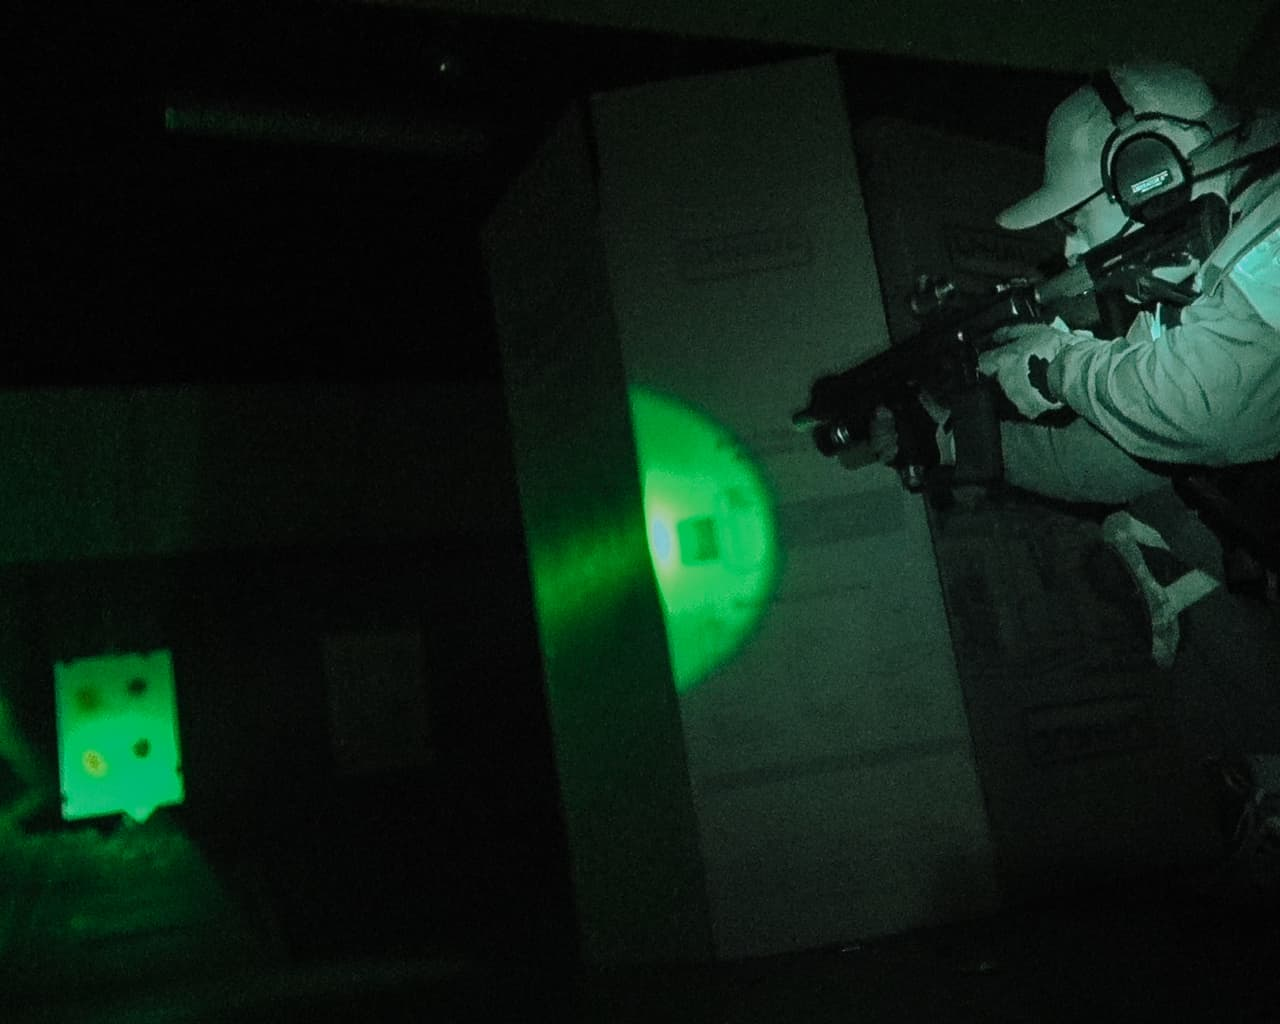 low light carbine gunfighter movement with barriers